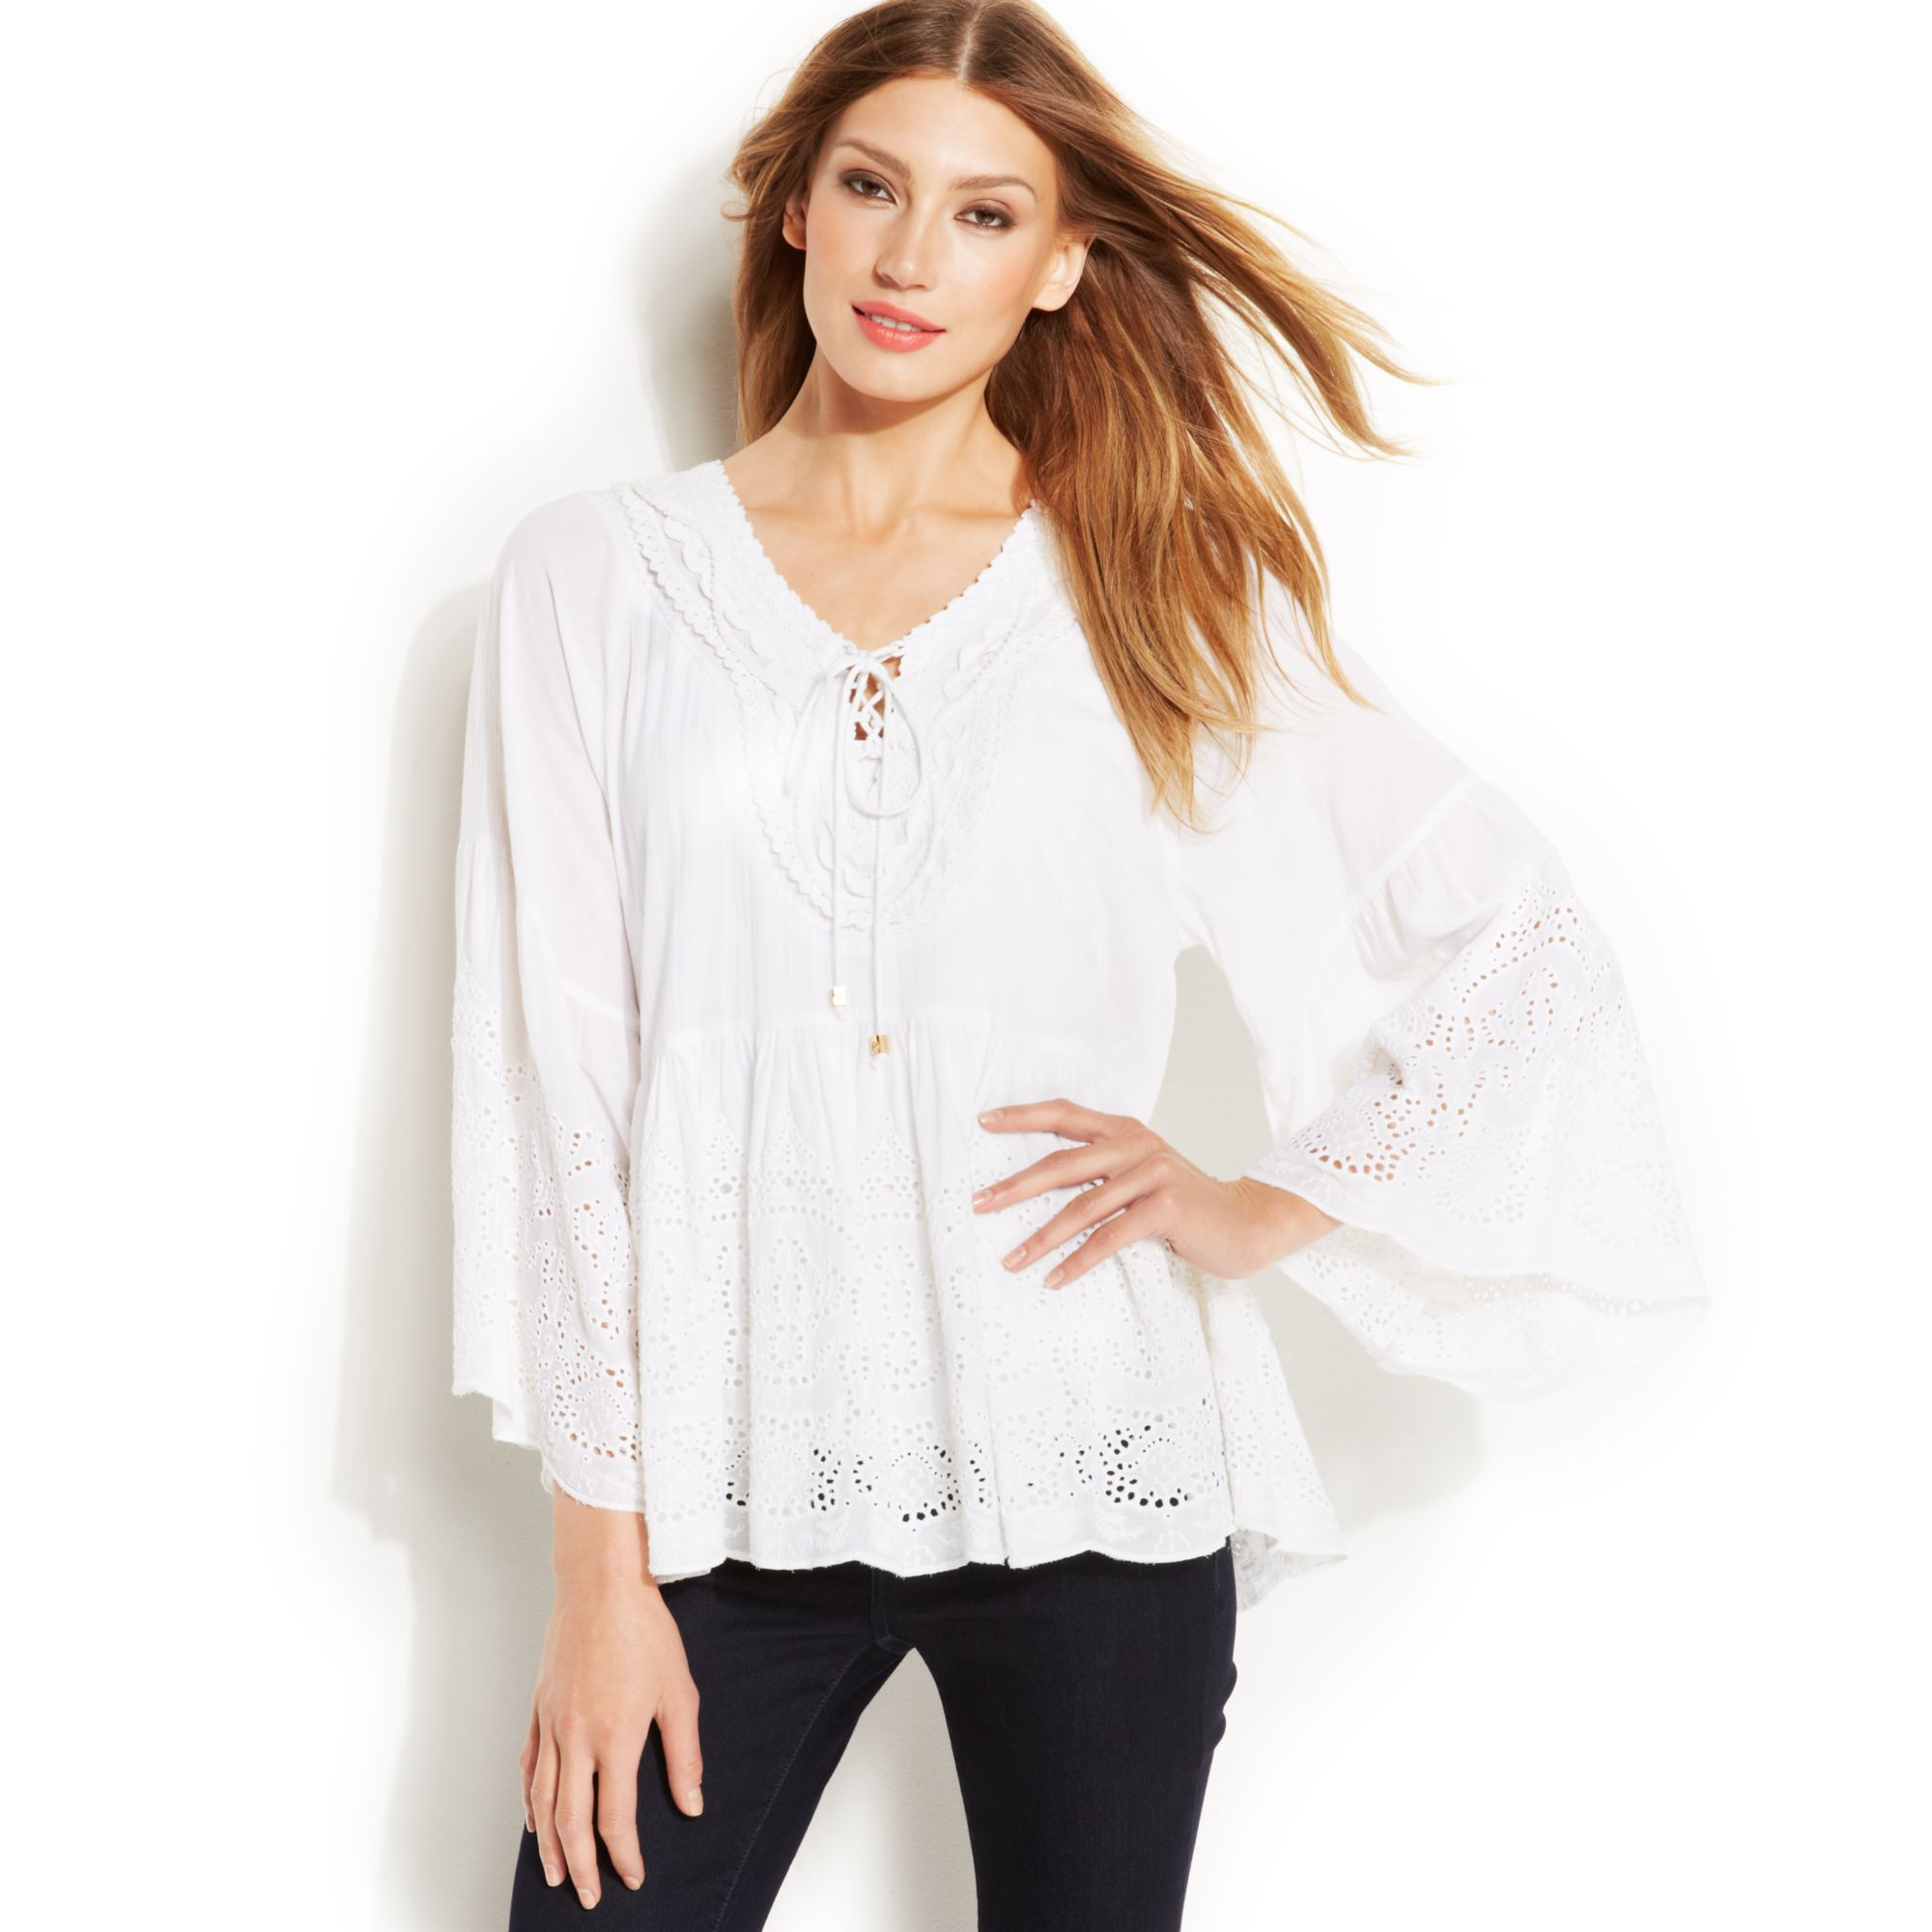 peasant tops - up to 70% off. Well, darn. This item just sold out. Select notify me & we'll tell you when it's back in stock.